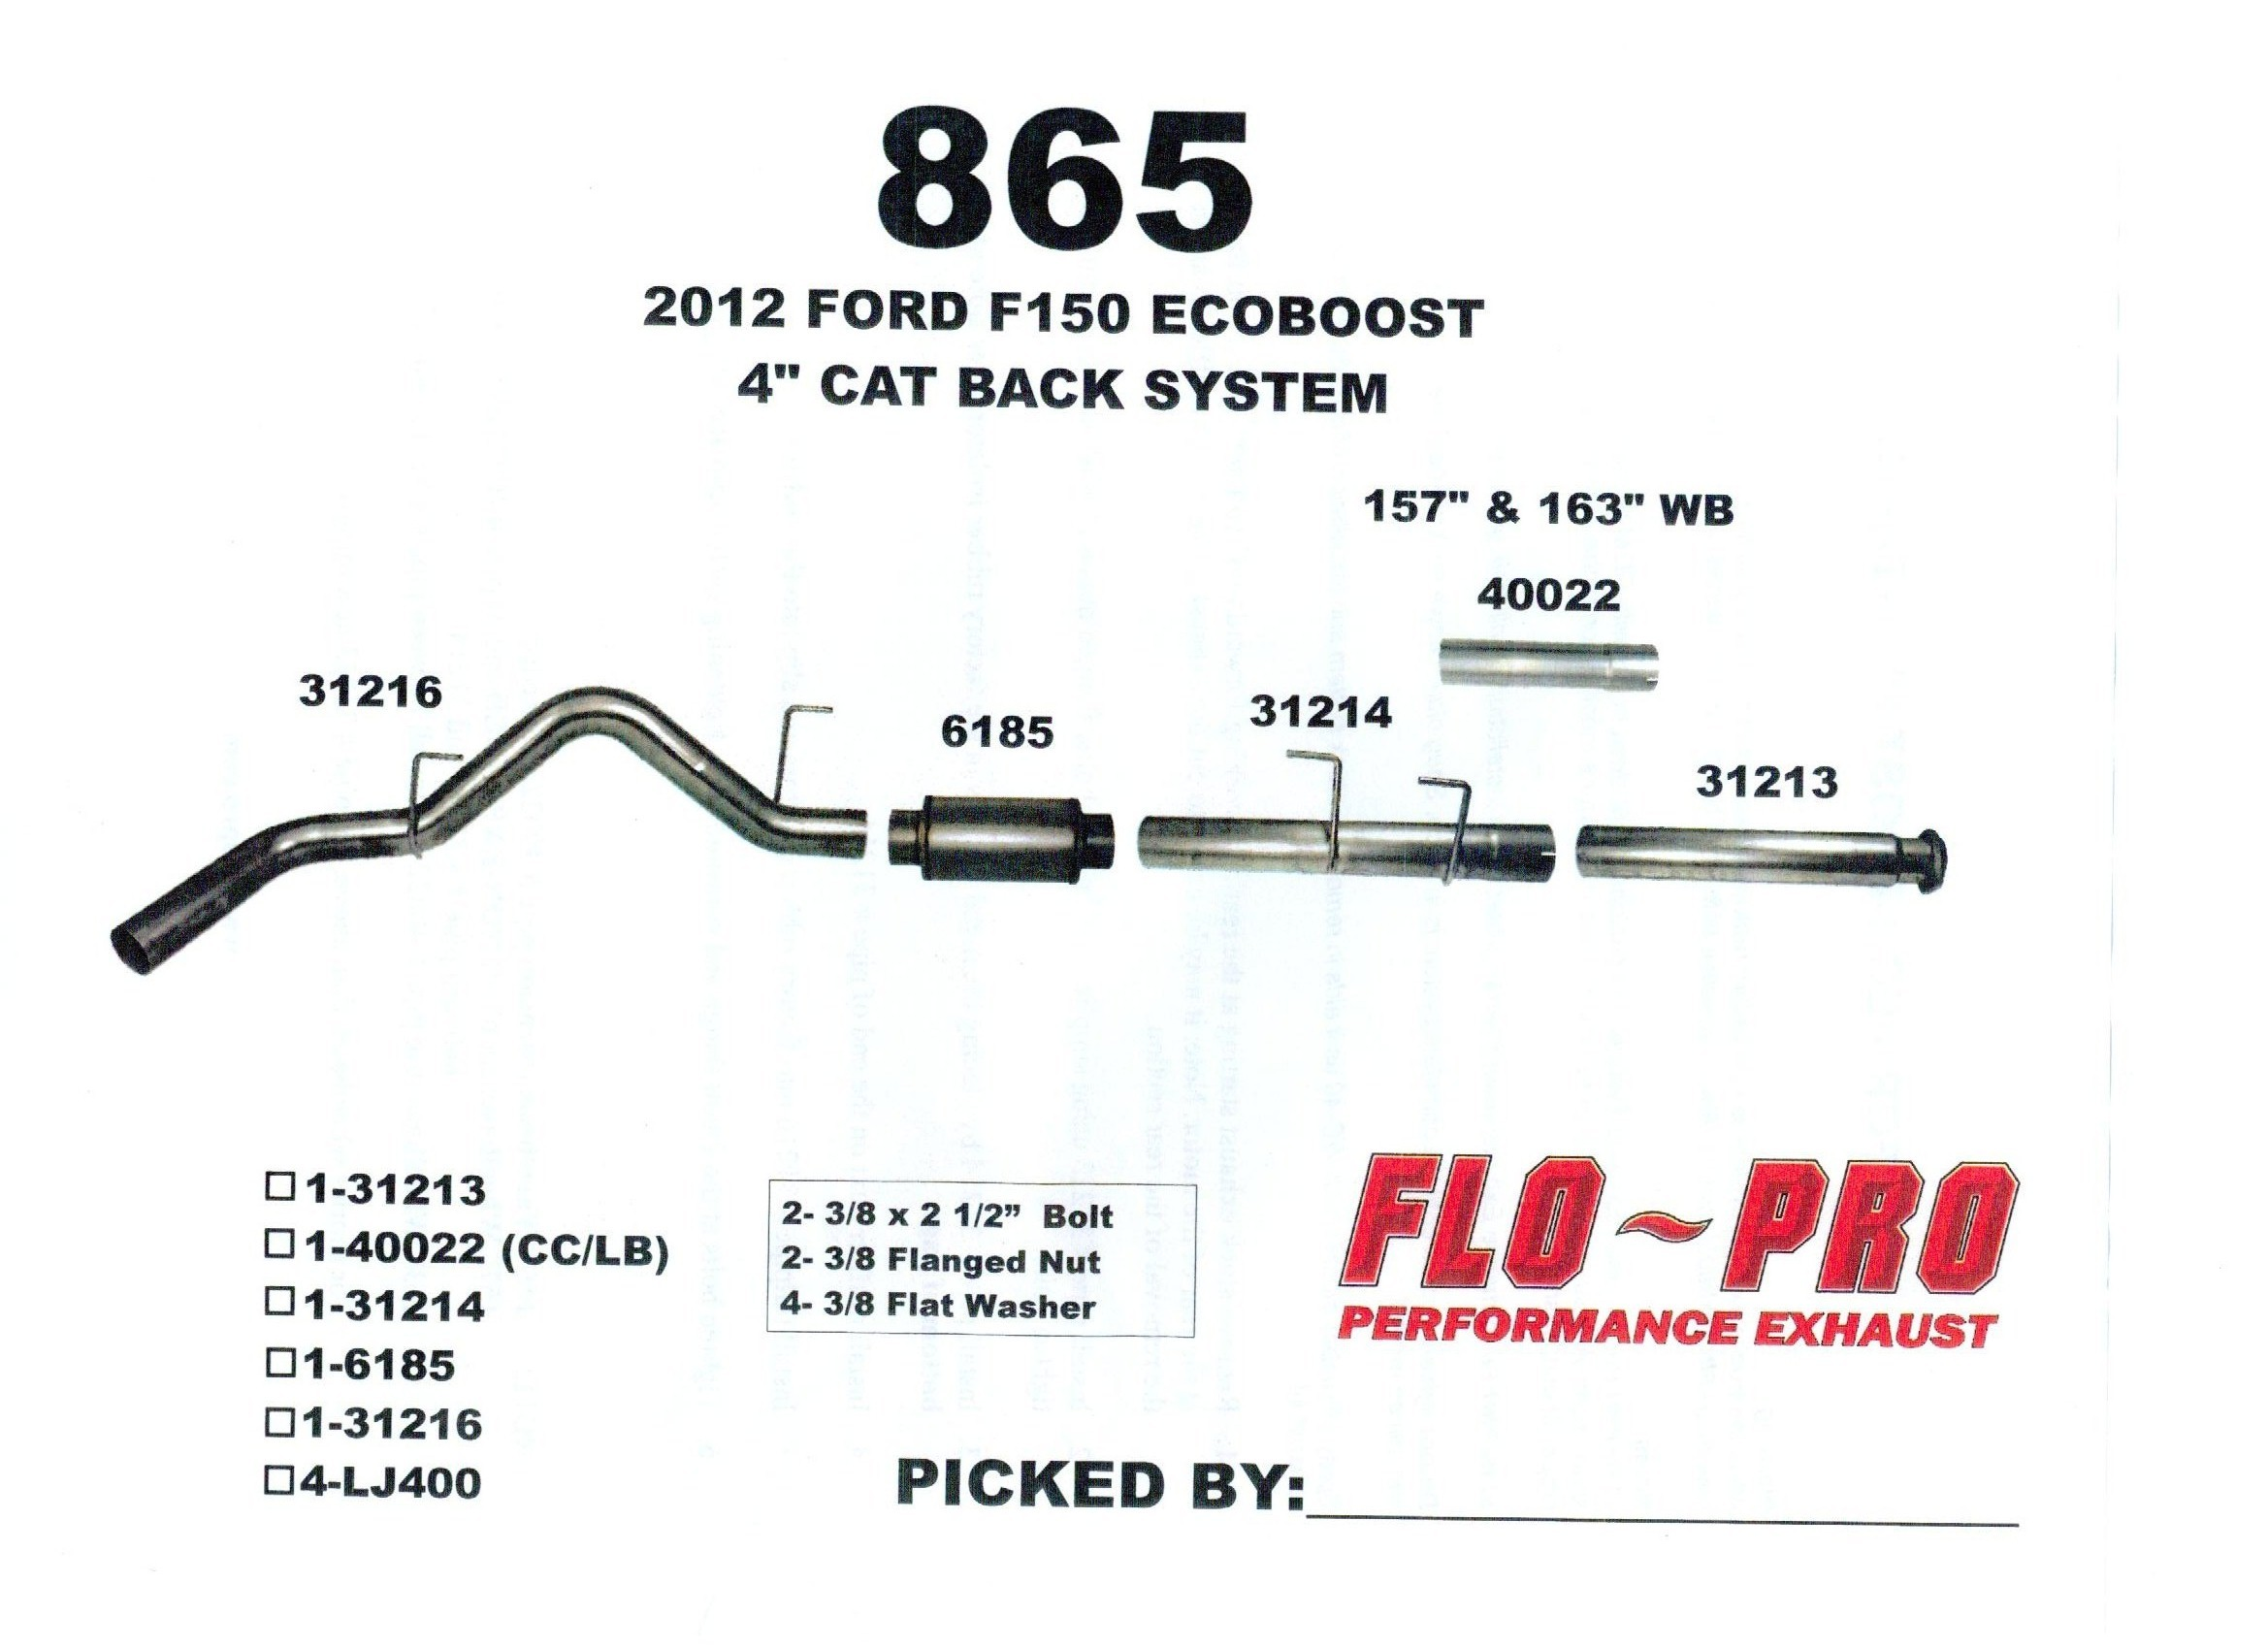 Stainless Flo Pro F Eco Boost Cat Back Exhaust on Ford F 150 Exhaust System Diagram